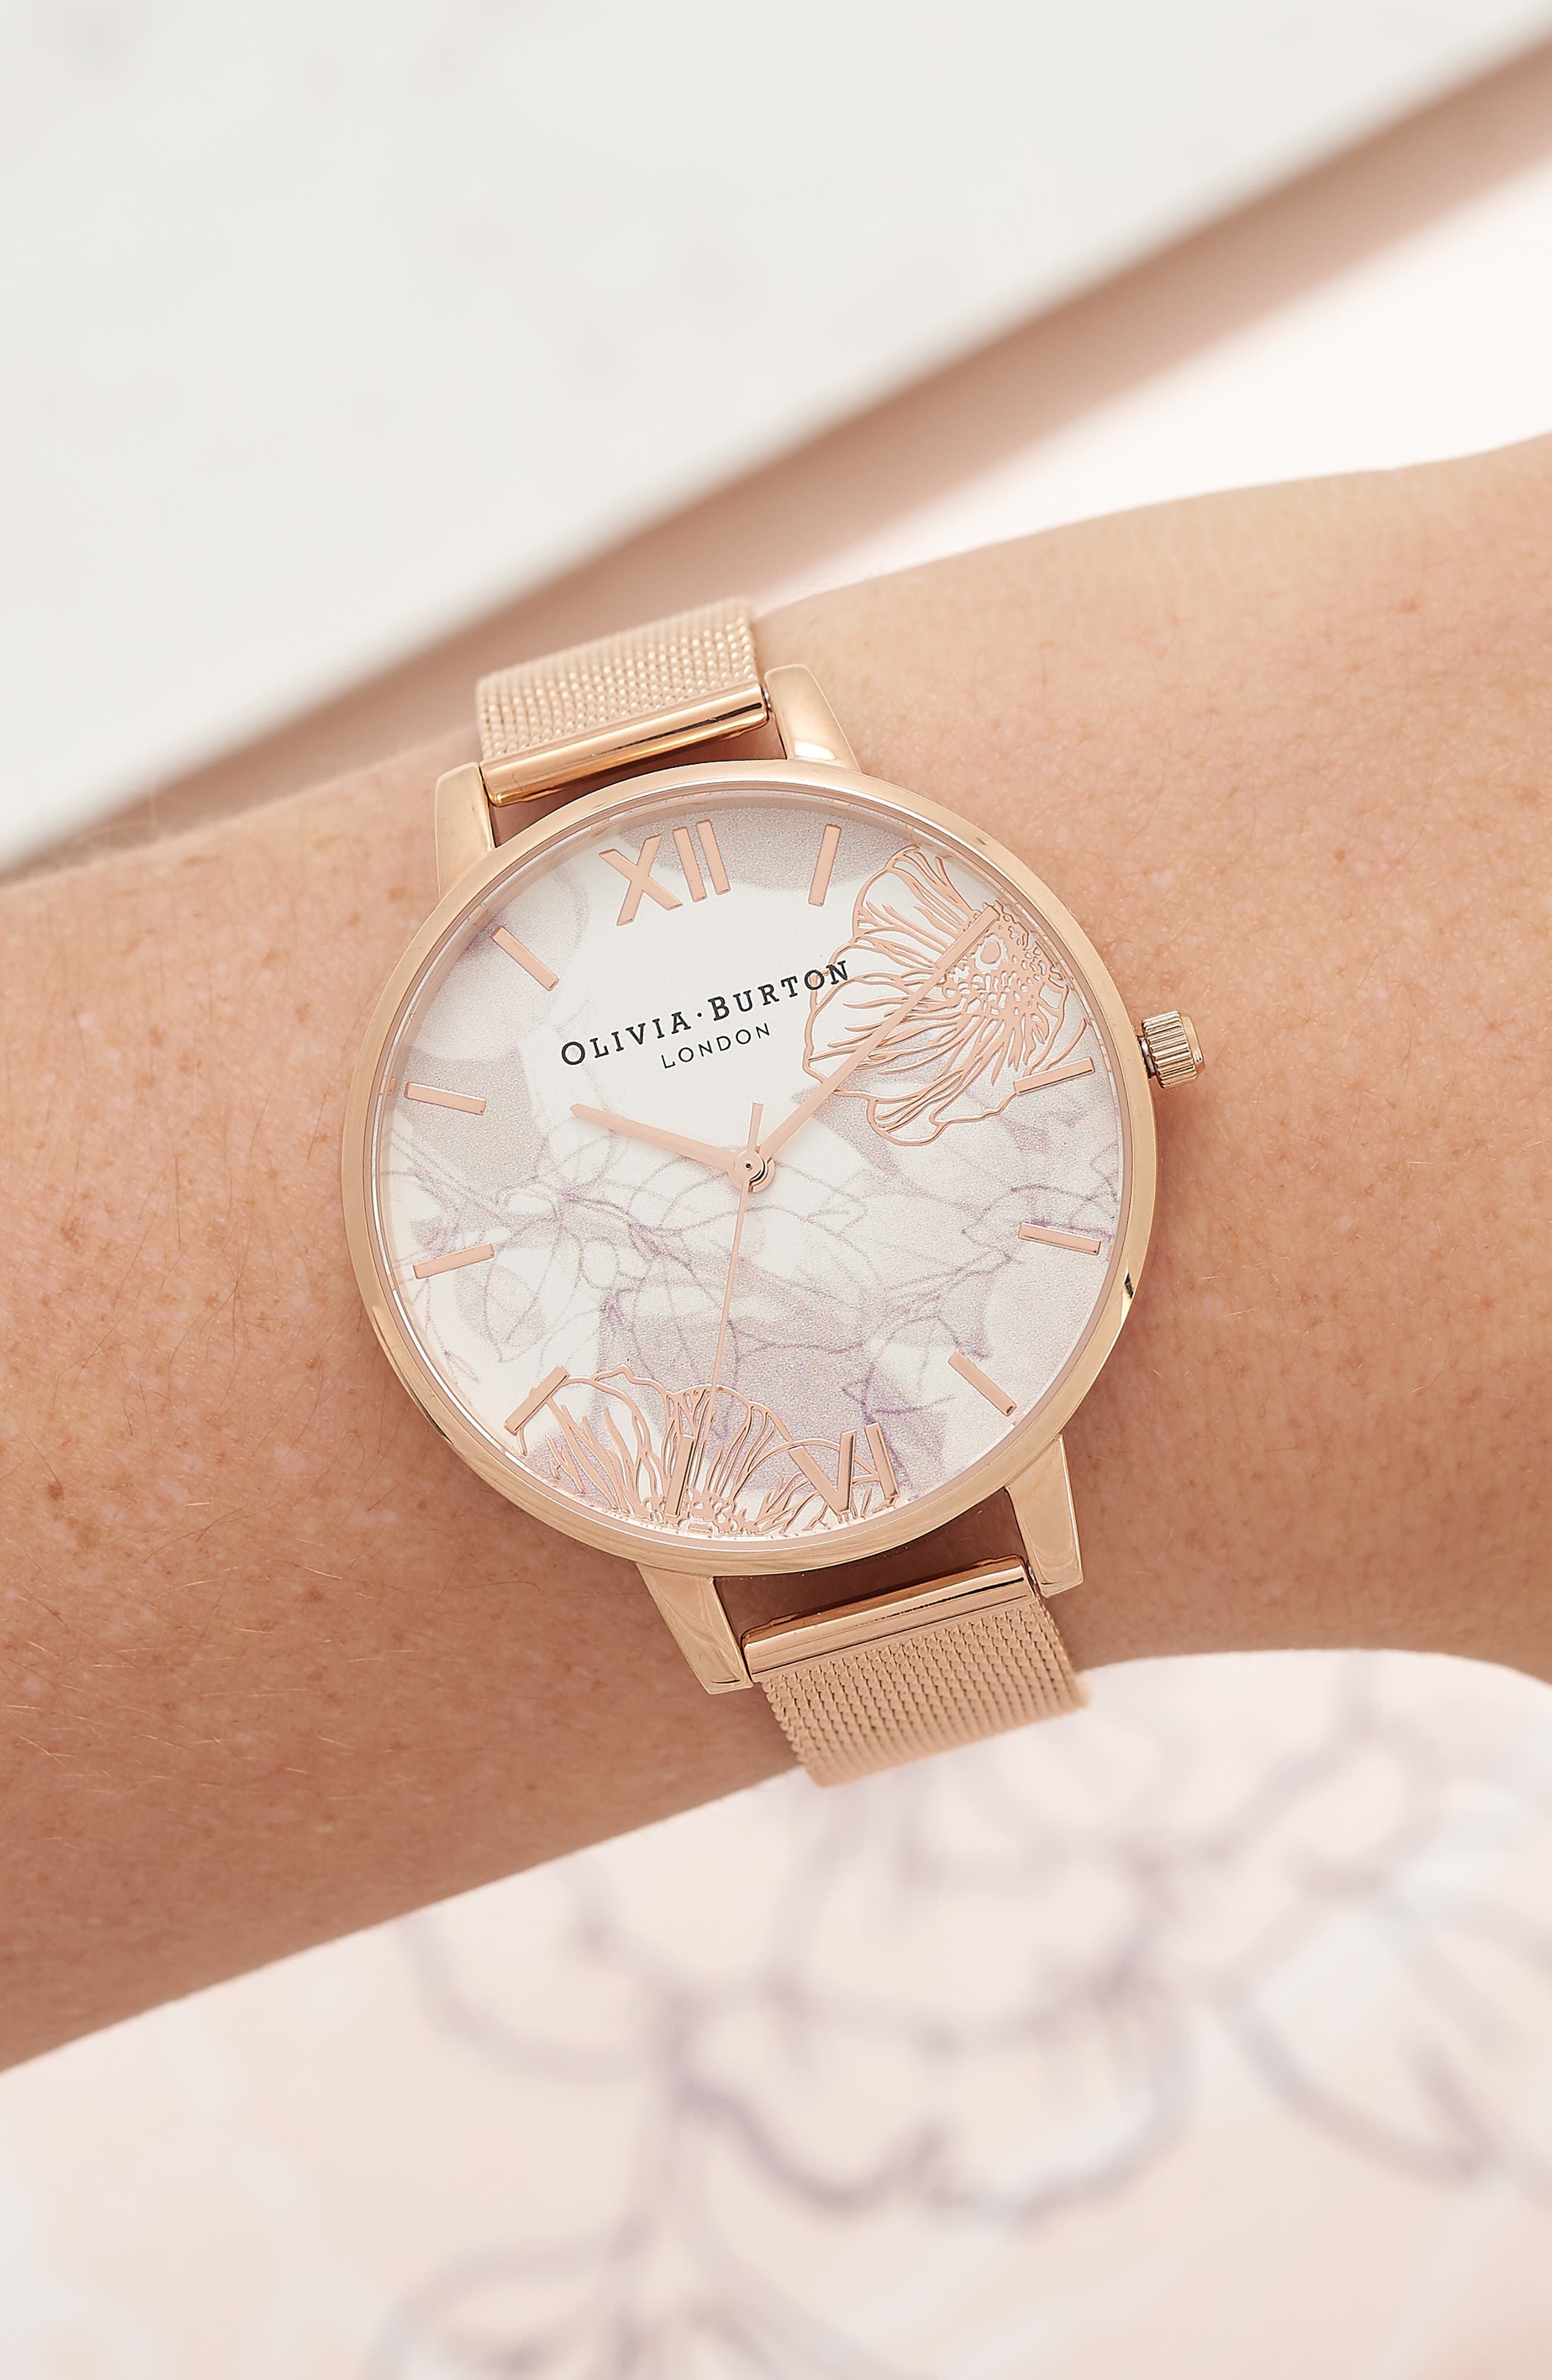 OLIVIA BURTON, Oliva Burton Abstract Florals Mesh Bracelet Watch, 38mm, Alternate thumbnail 2, color, ROSE GOLD